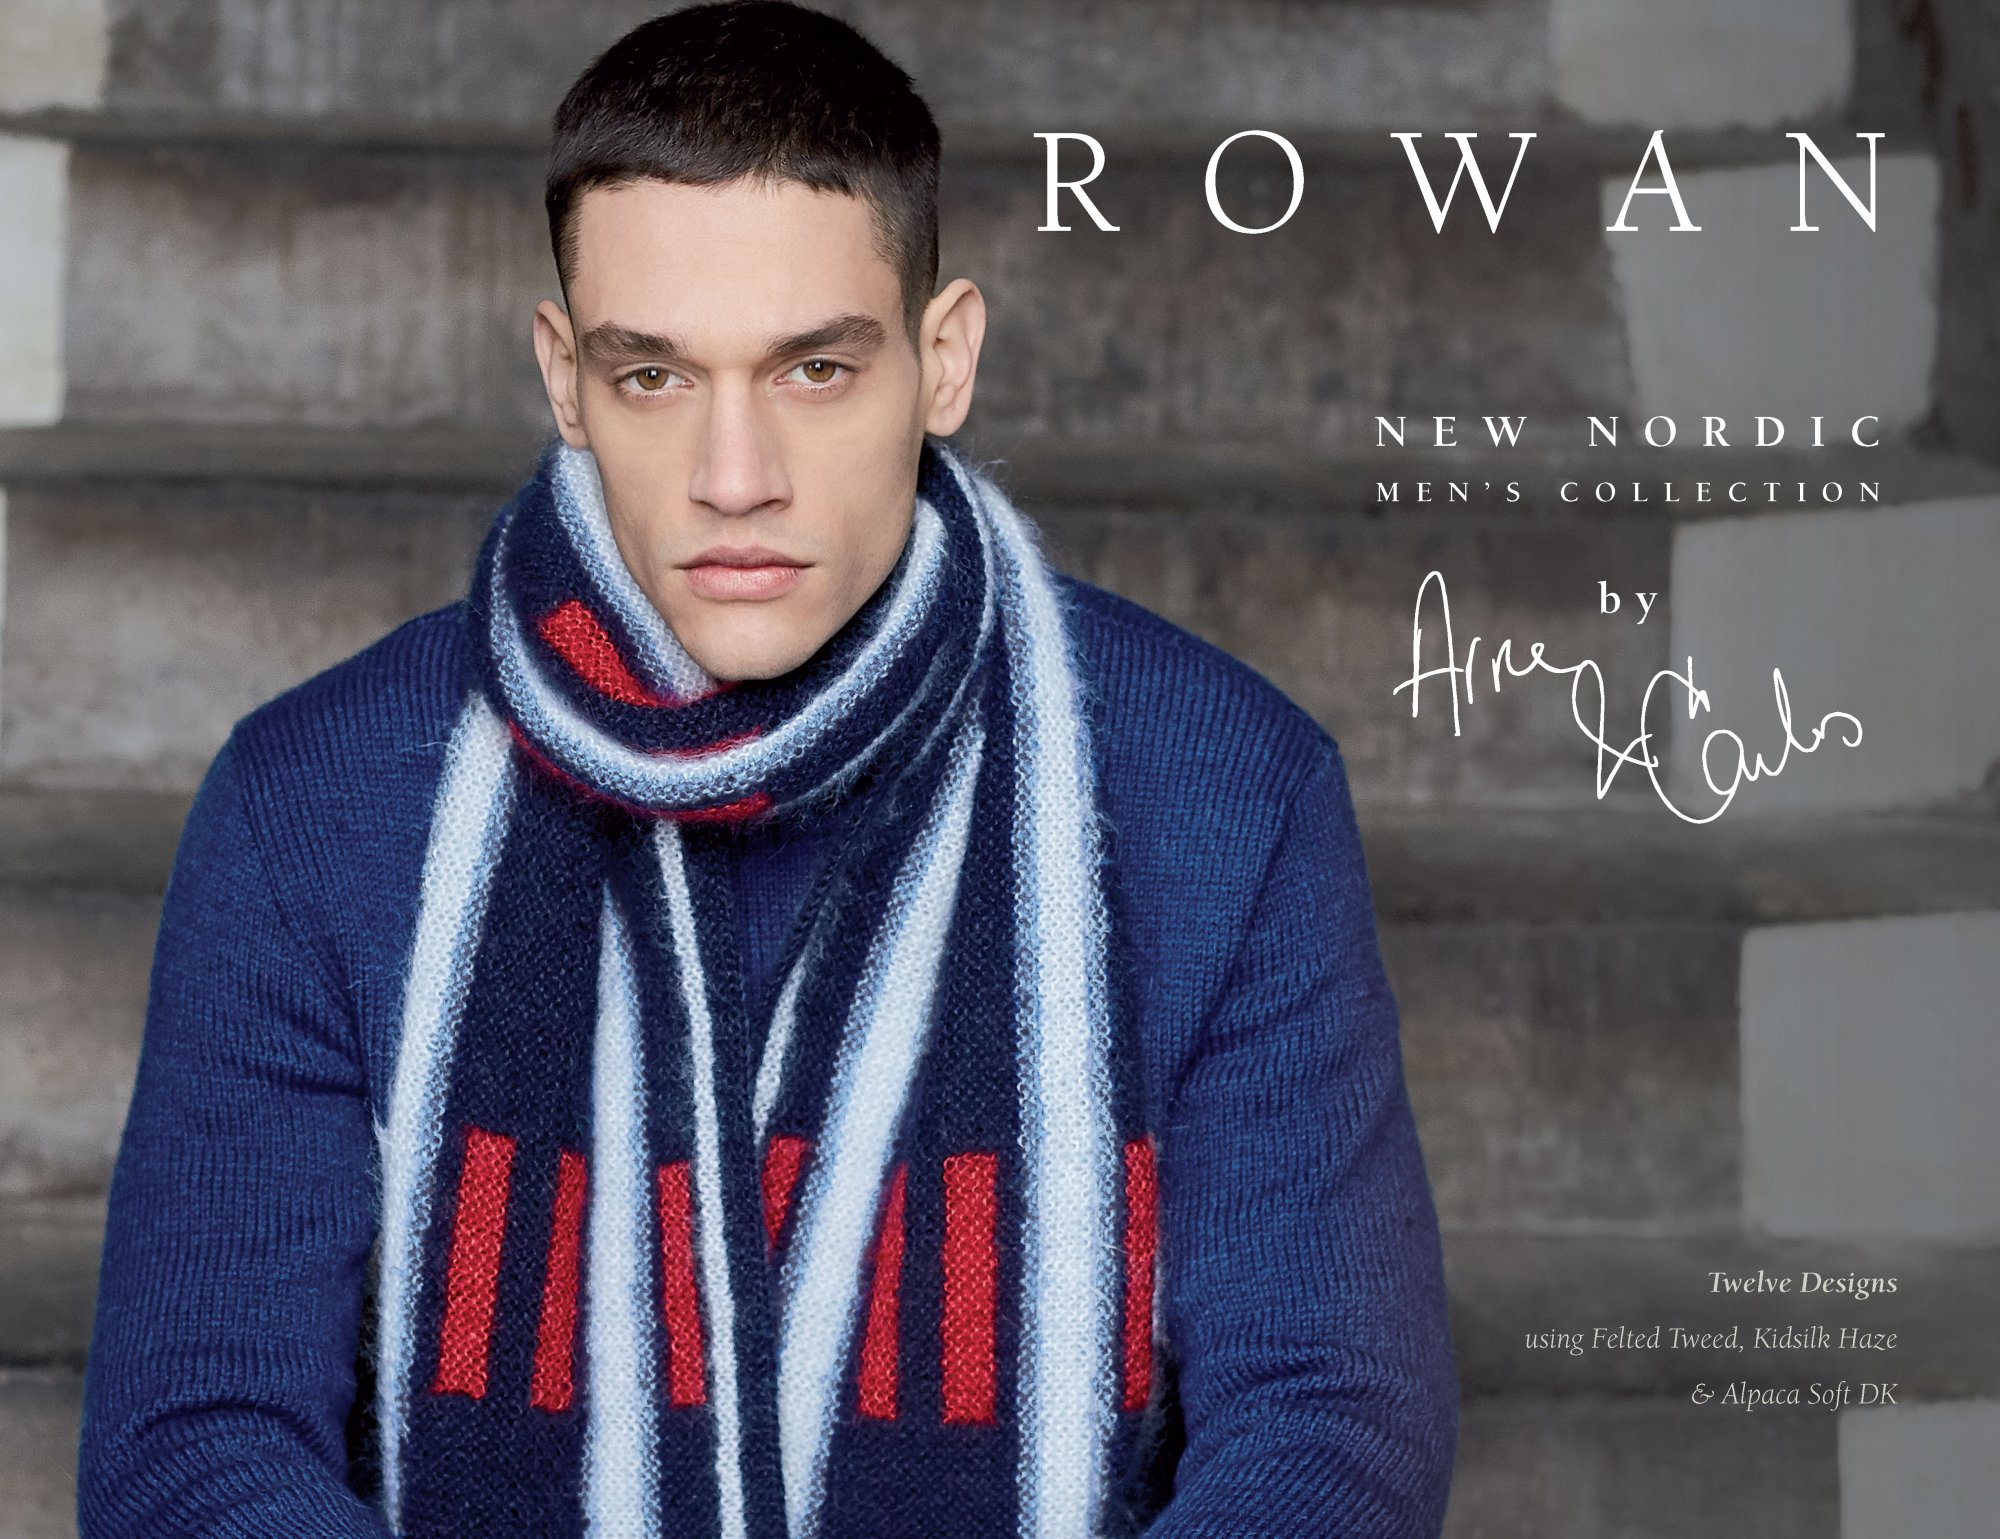 New Nordic Men's Collection by Arne & Carlos for Rowan